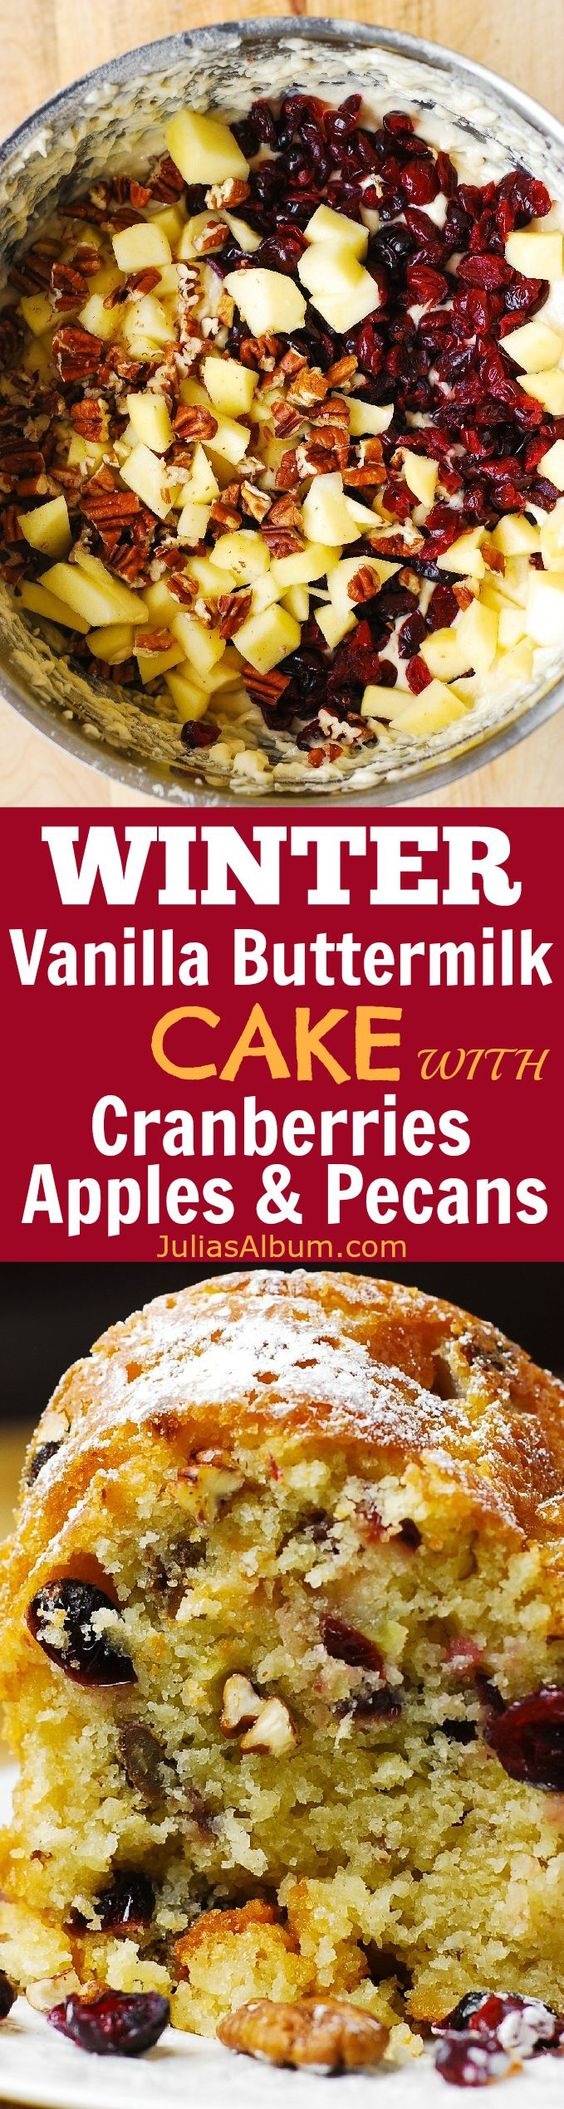 WINTER RECIPE: Vanilla Buttermilk cake with Cranberries, Apples, and ...